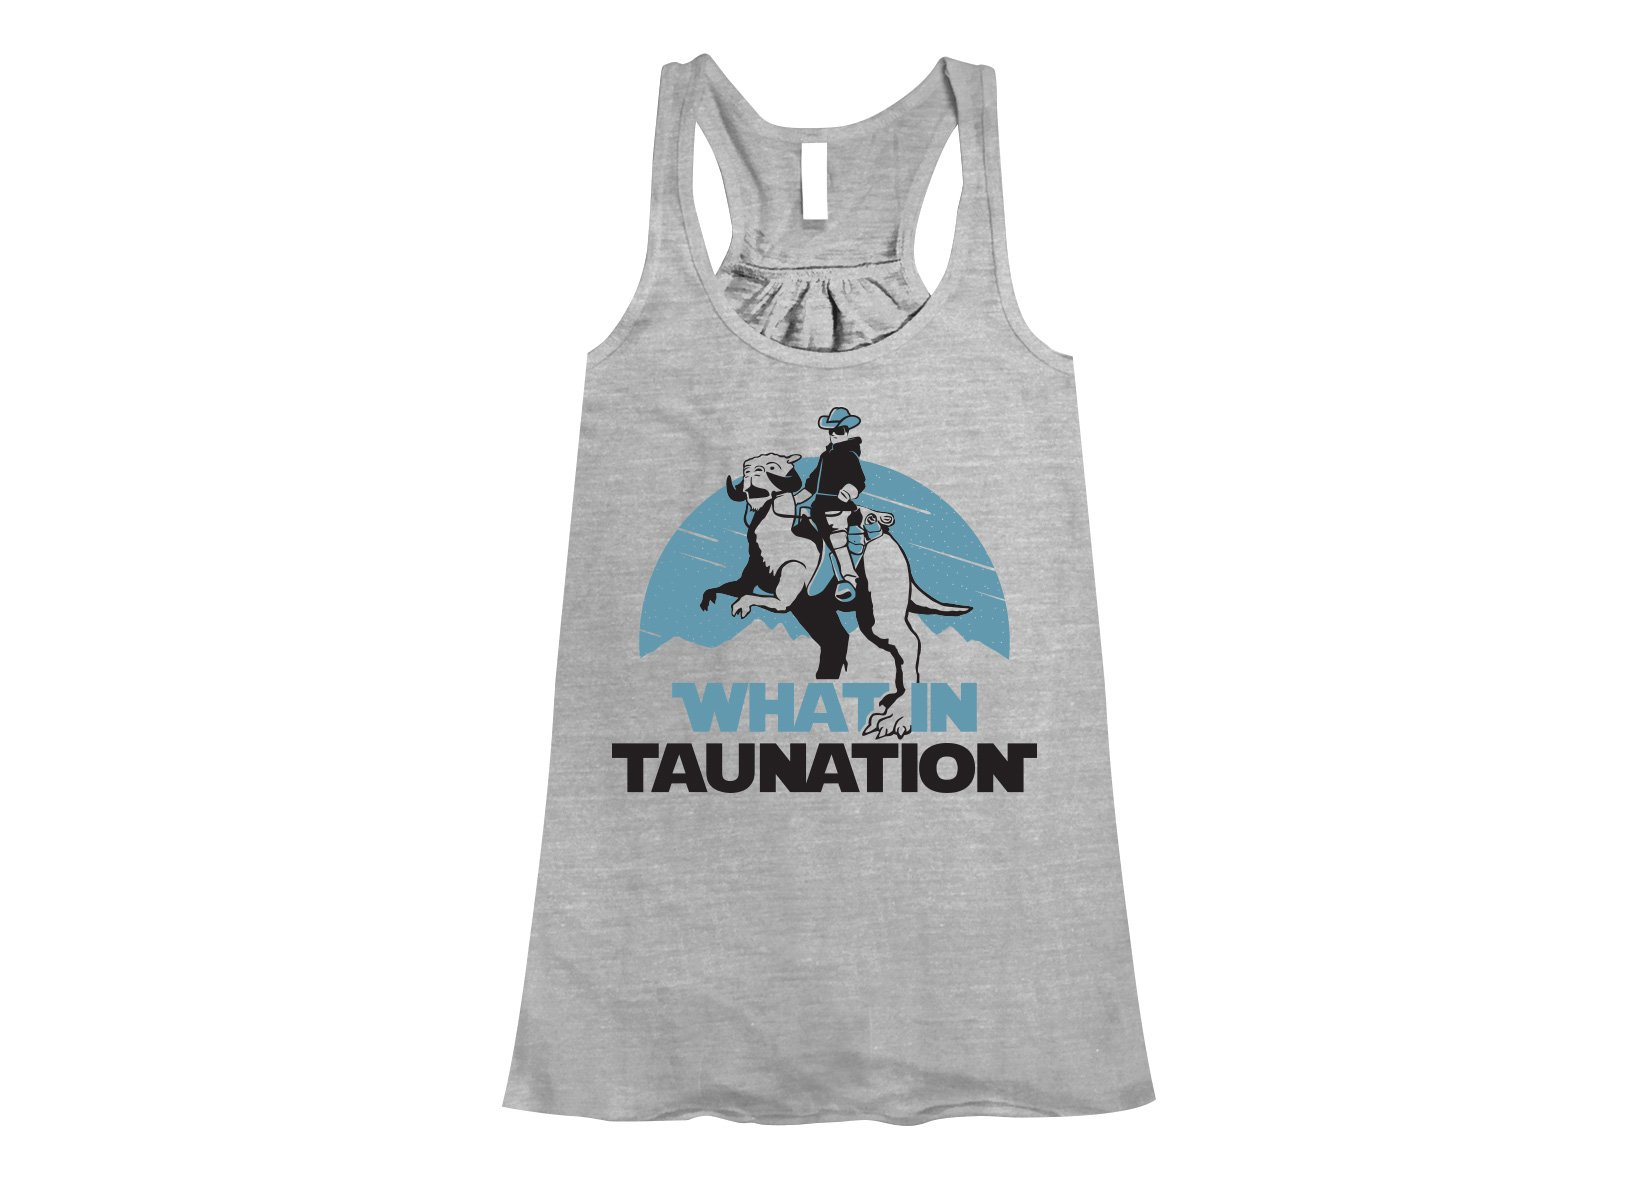 What In Taunation on Womens Tanks T-Shirt